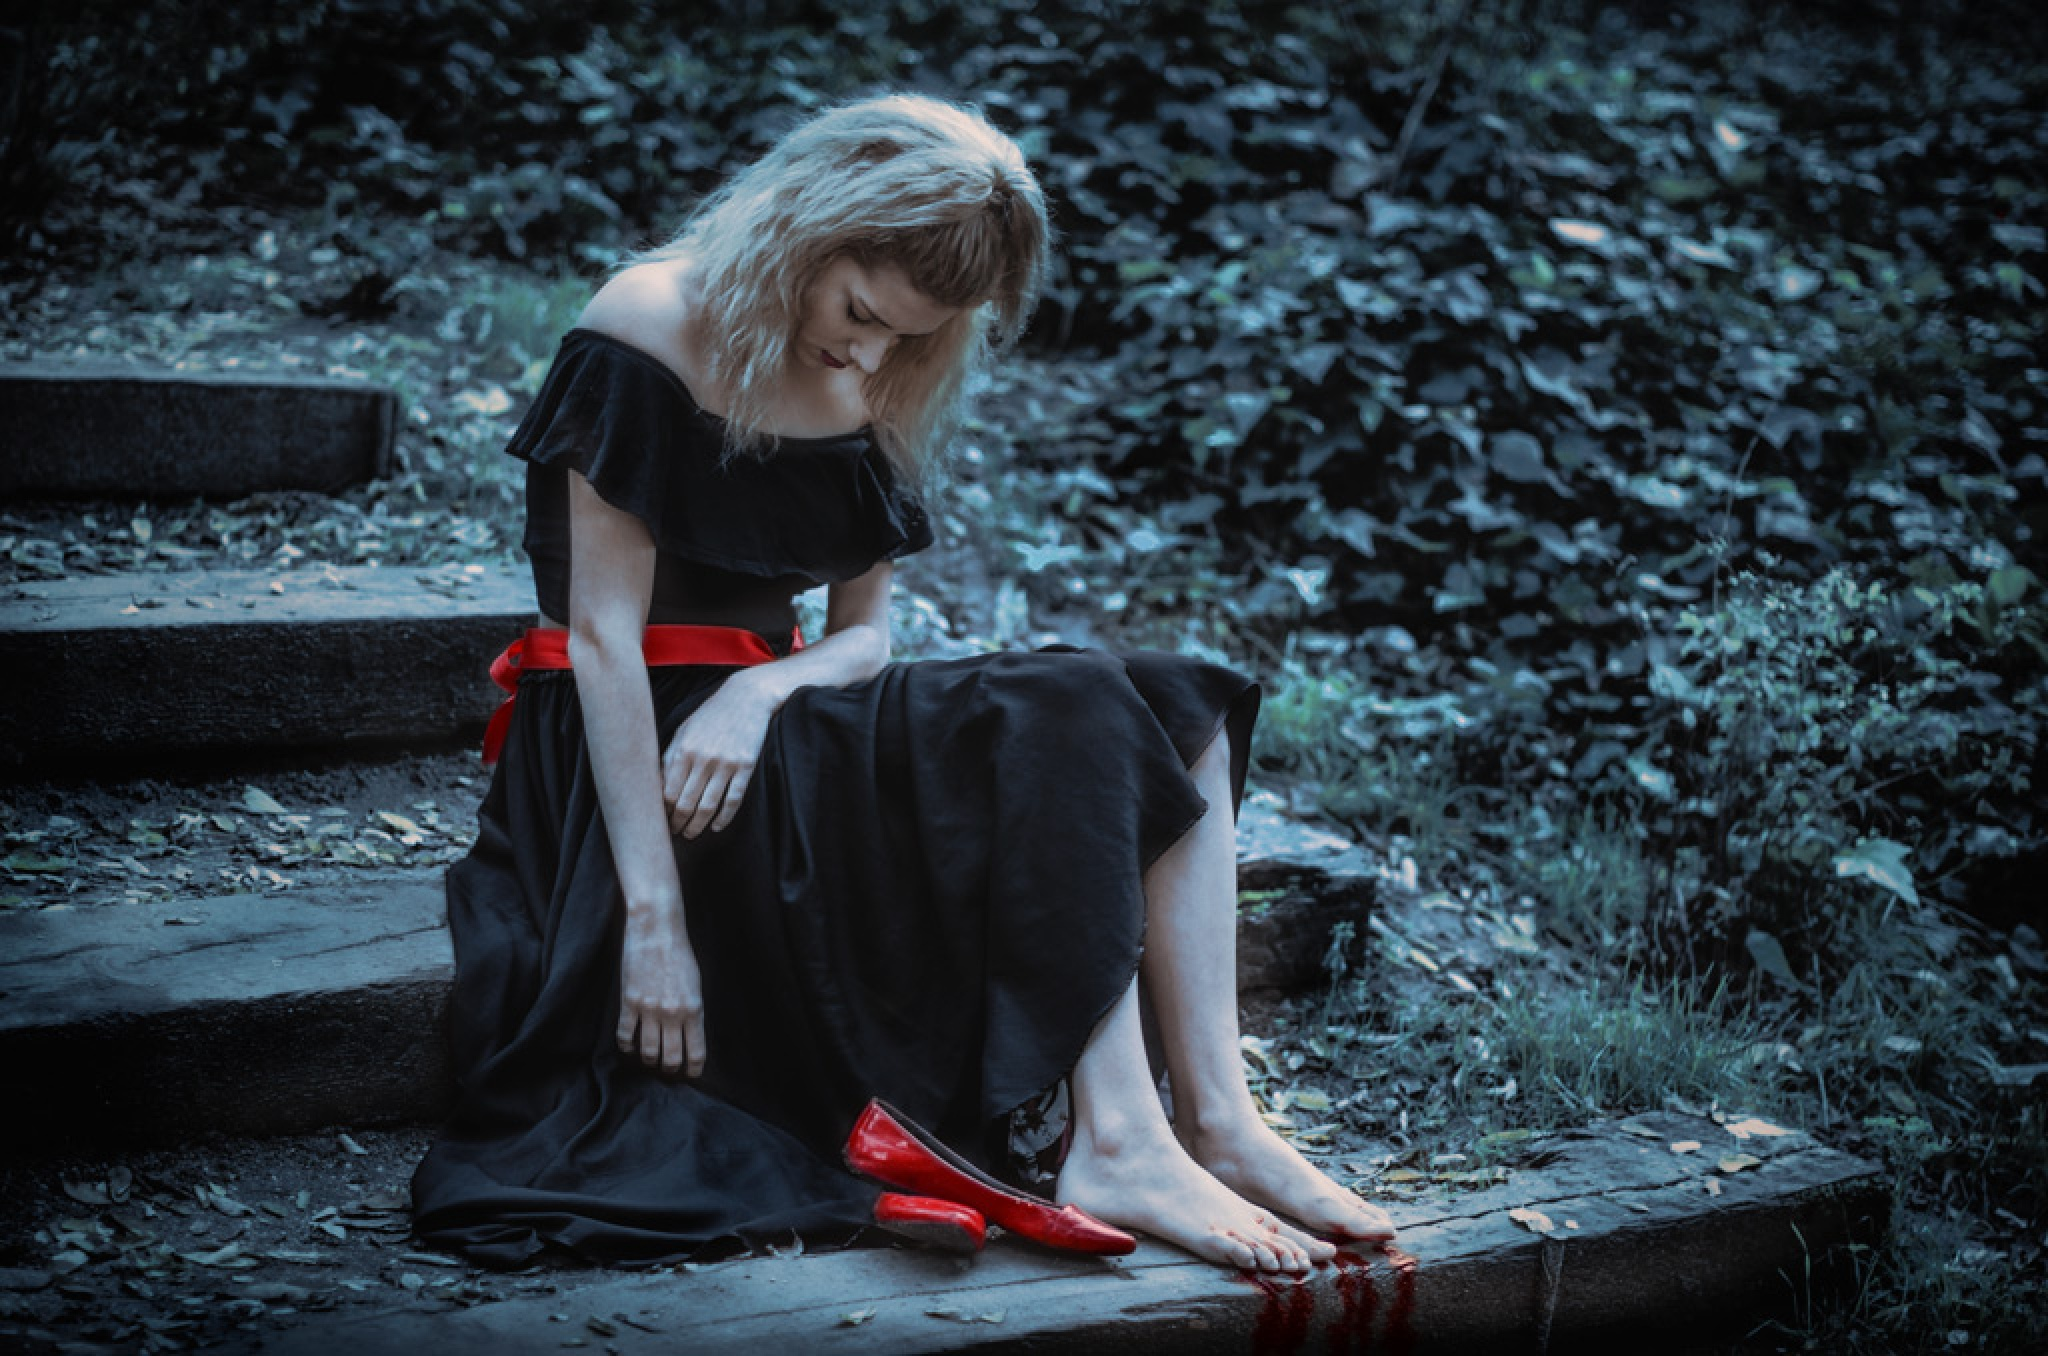 The red shoes: The punishment by Mia Madrid